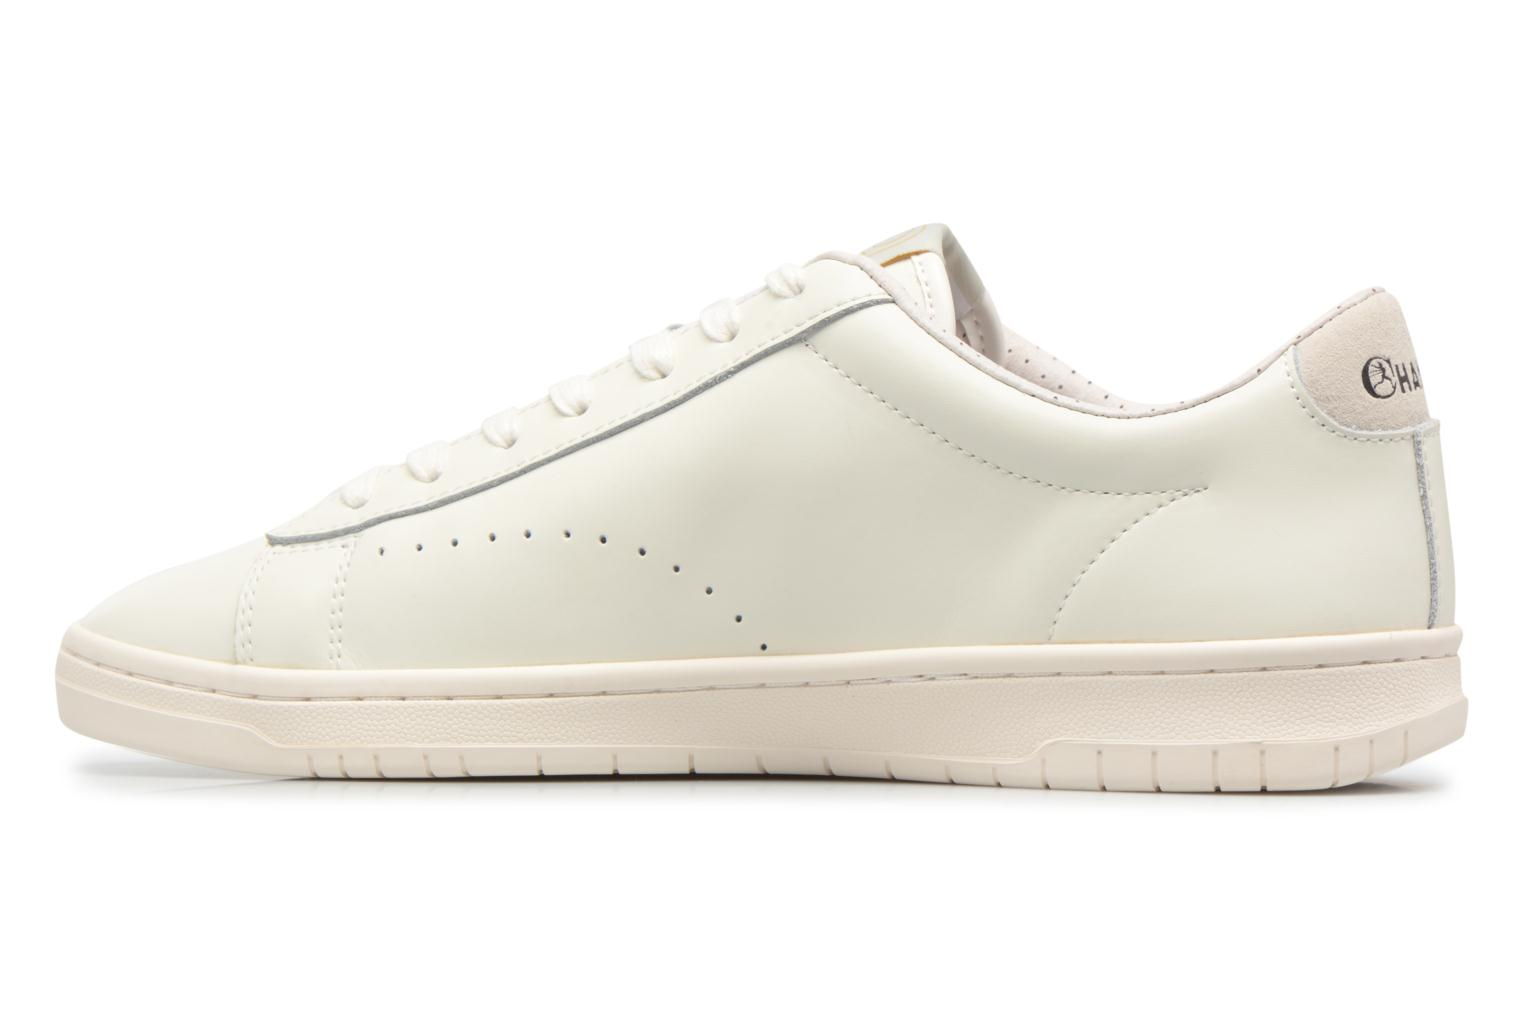 Champion Low Cut Chaussures 919 LOW CORPORATE CORPORATE CORPORATE (Blanc) - Baskets en Más cómodo Chaussures casual sauvages 0c01ee